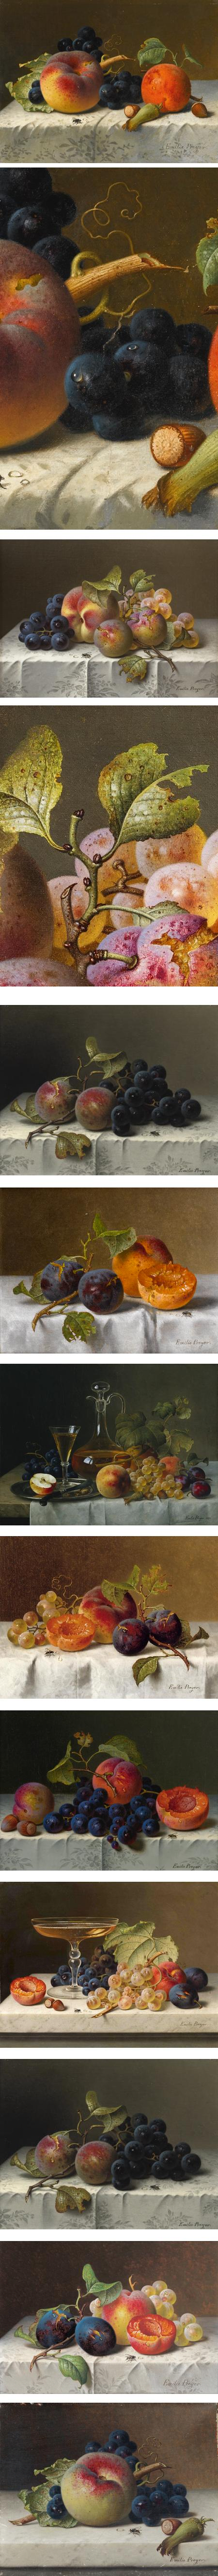 Emelie Preyer, still life of fruit